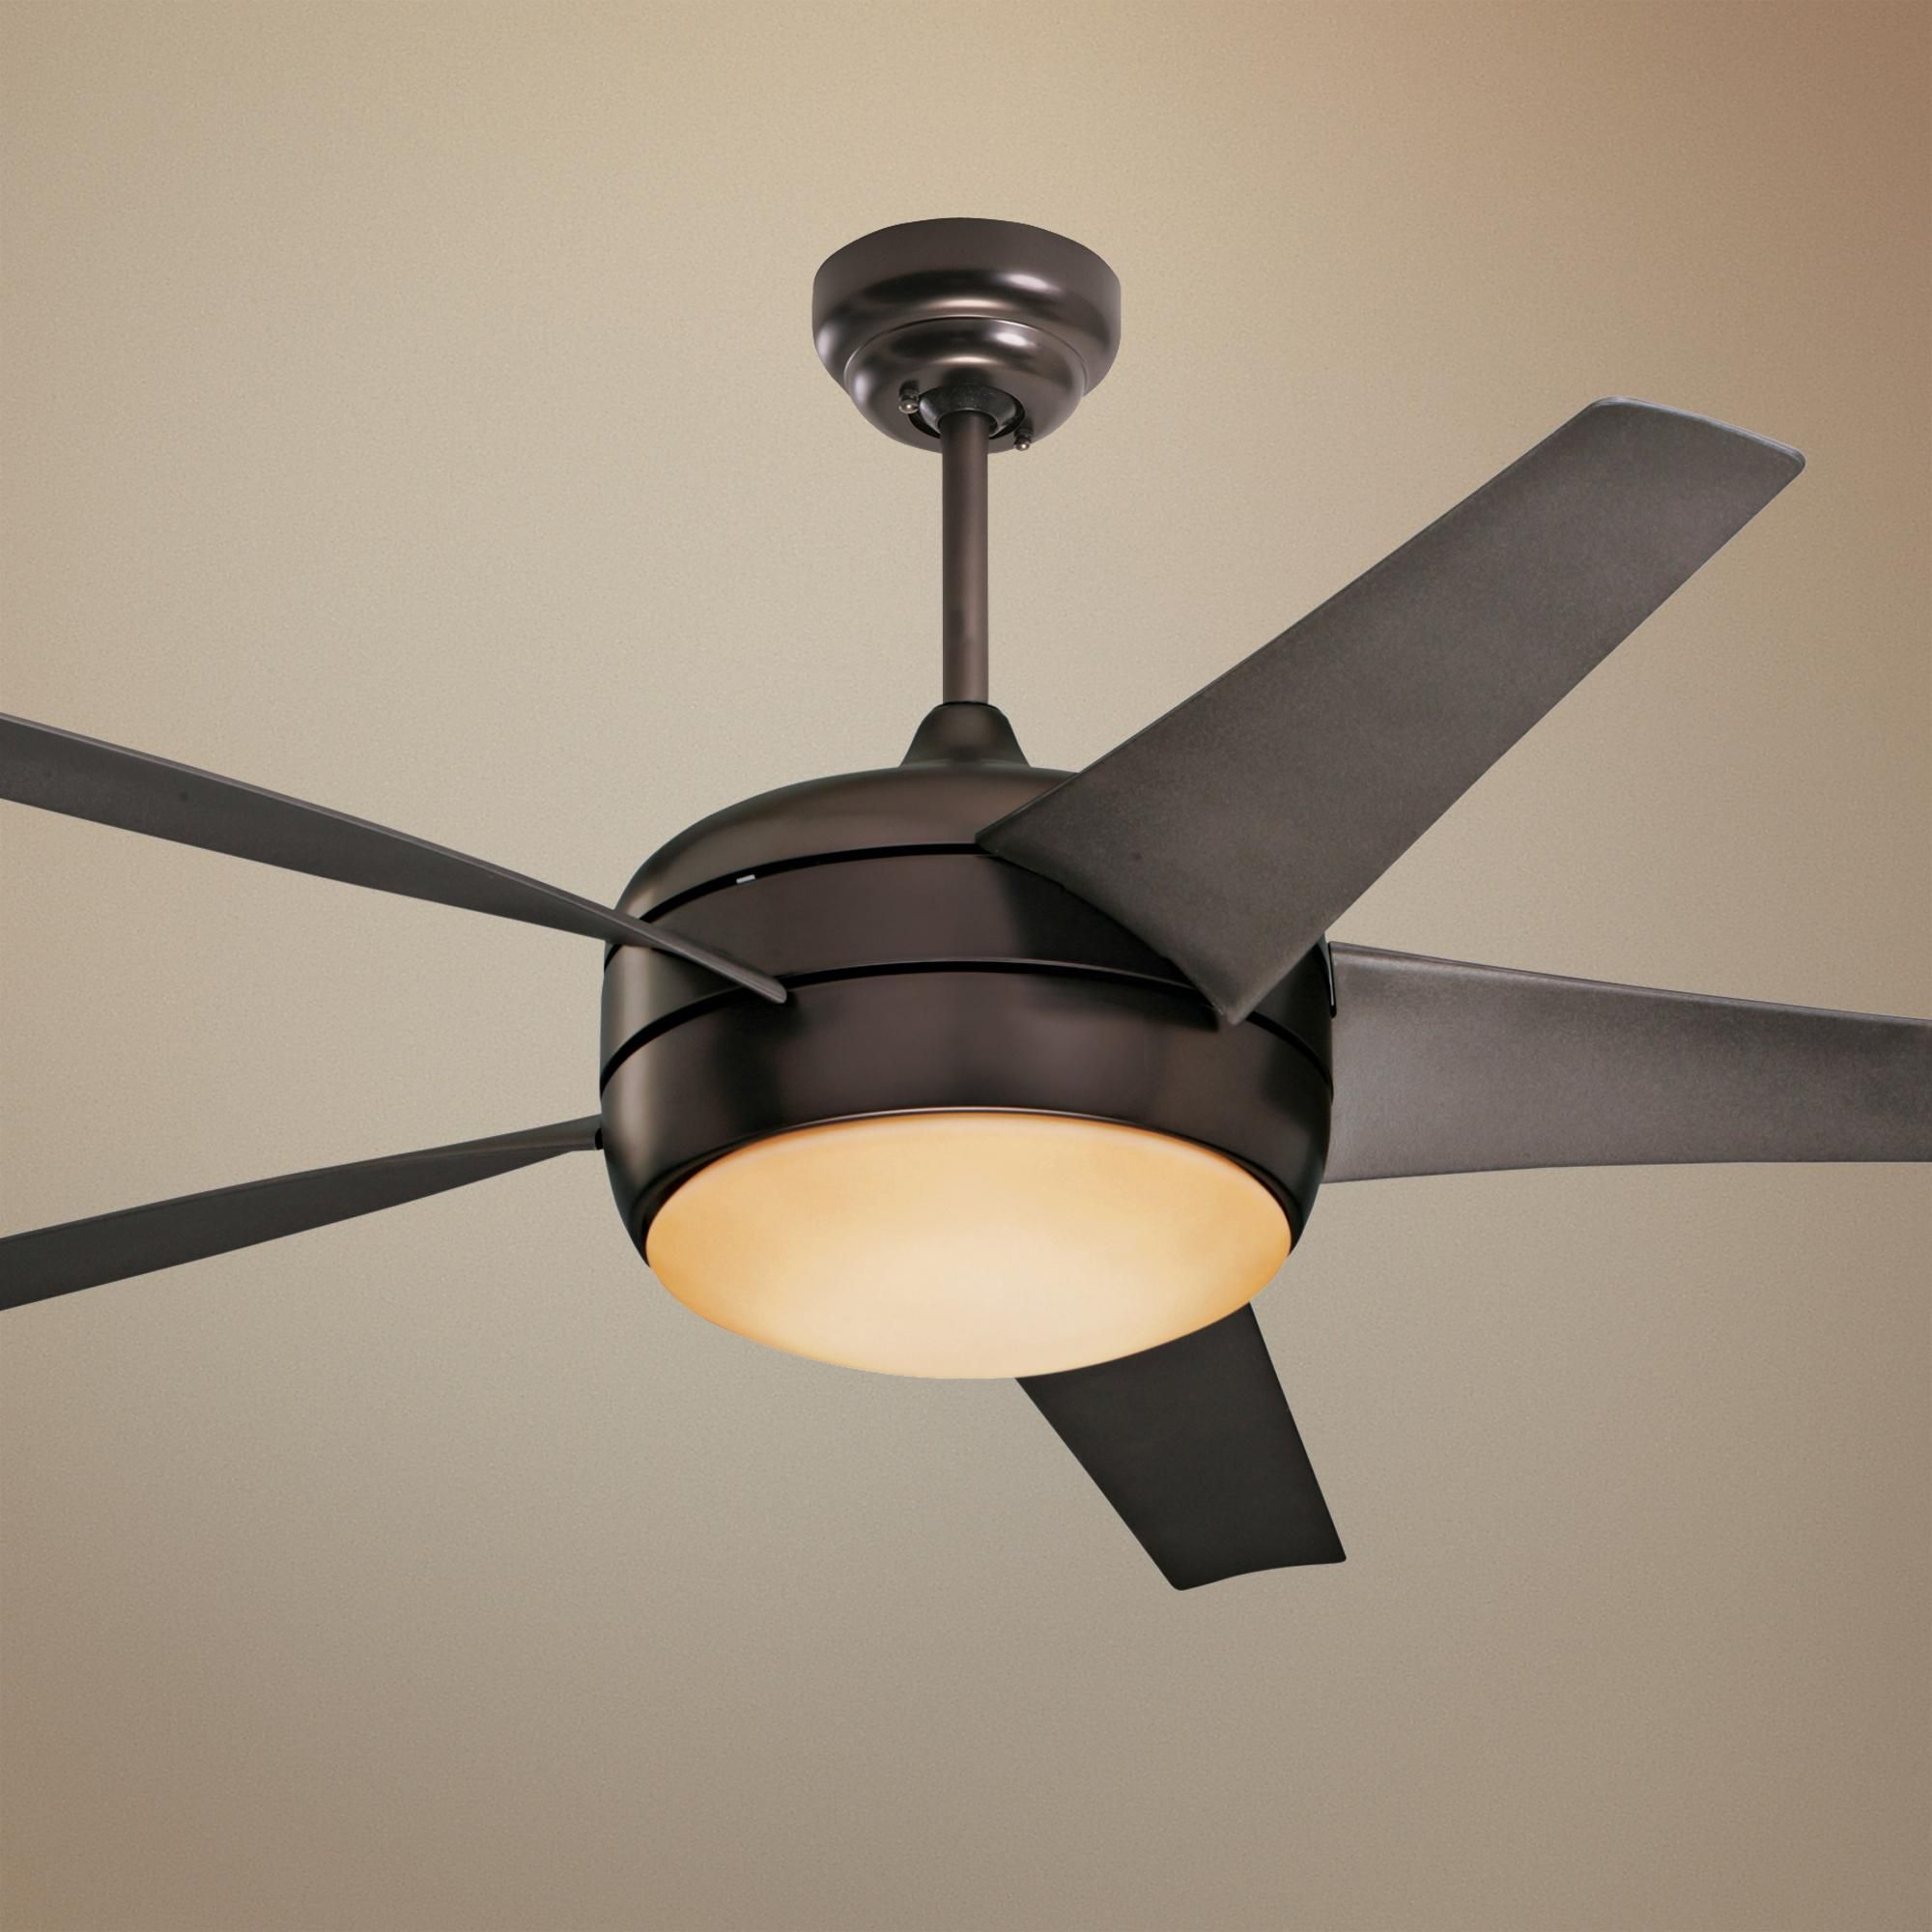 larger light with fan olympia oil kichler s rubbed ceiling ceilings fans lighting lowe in view bronze